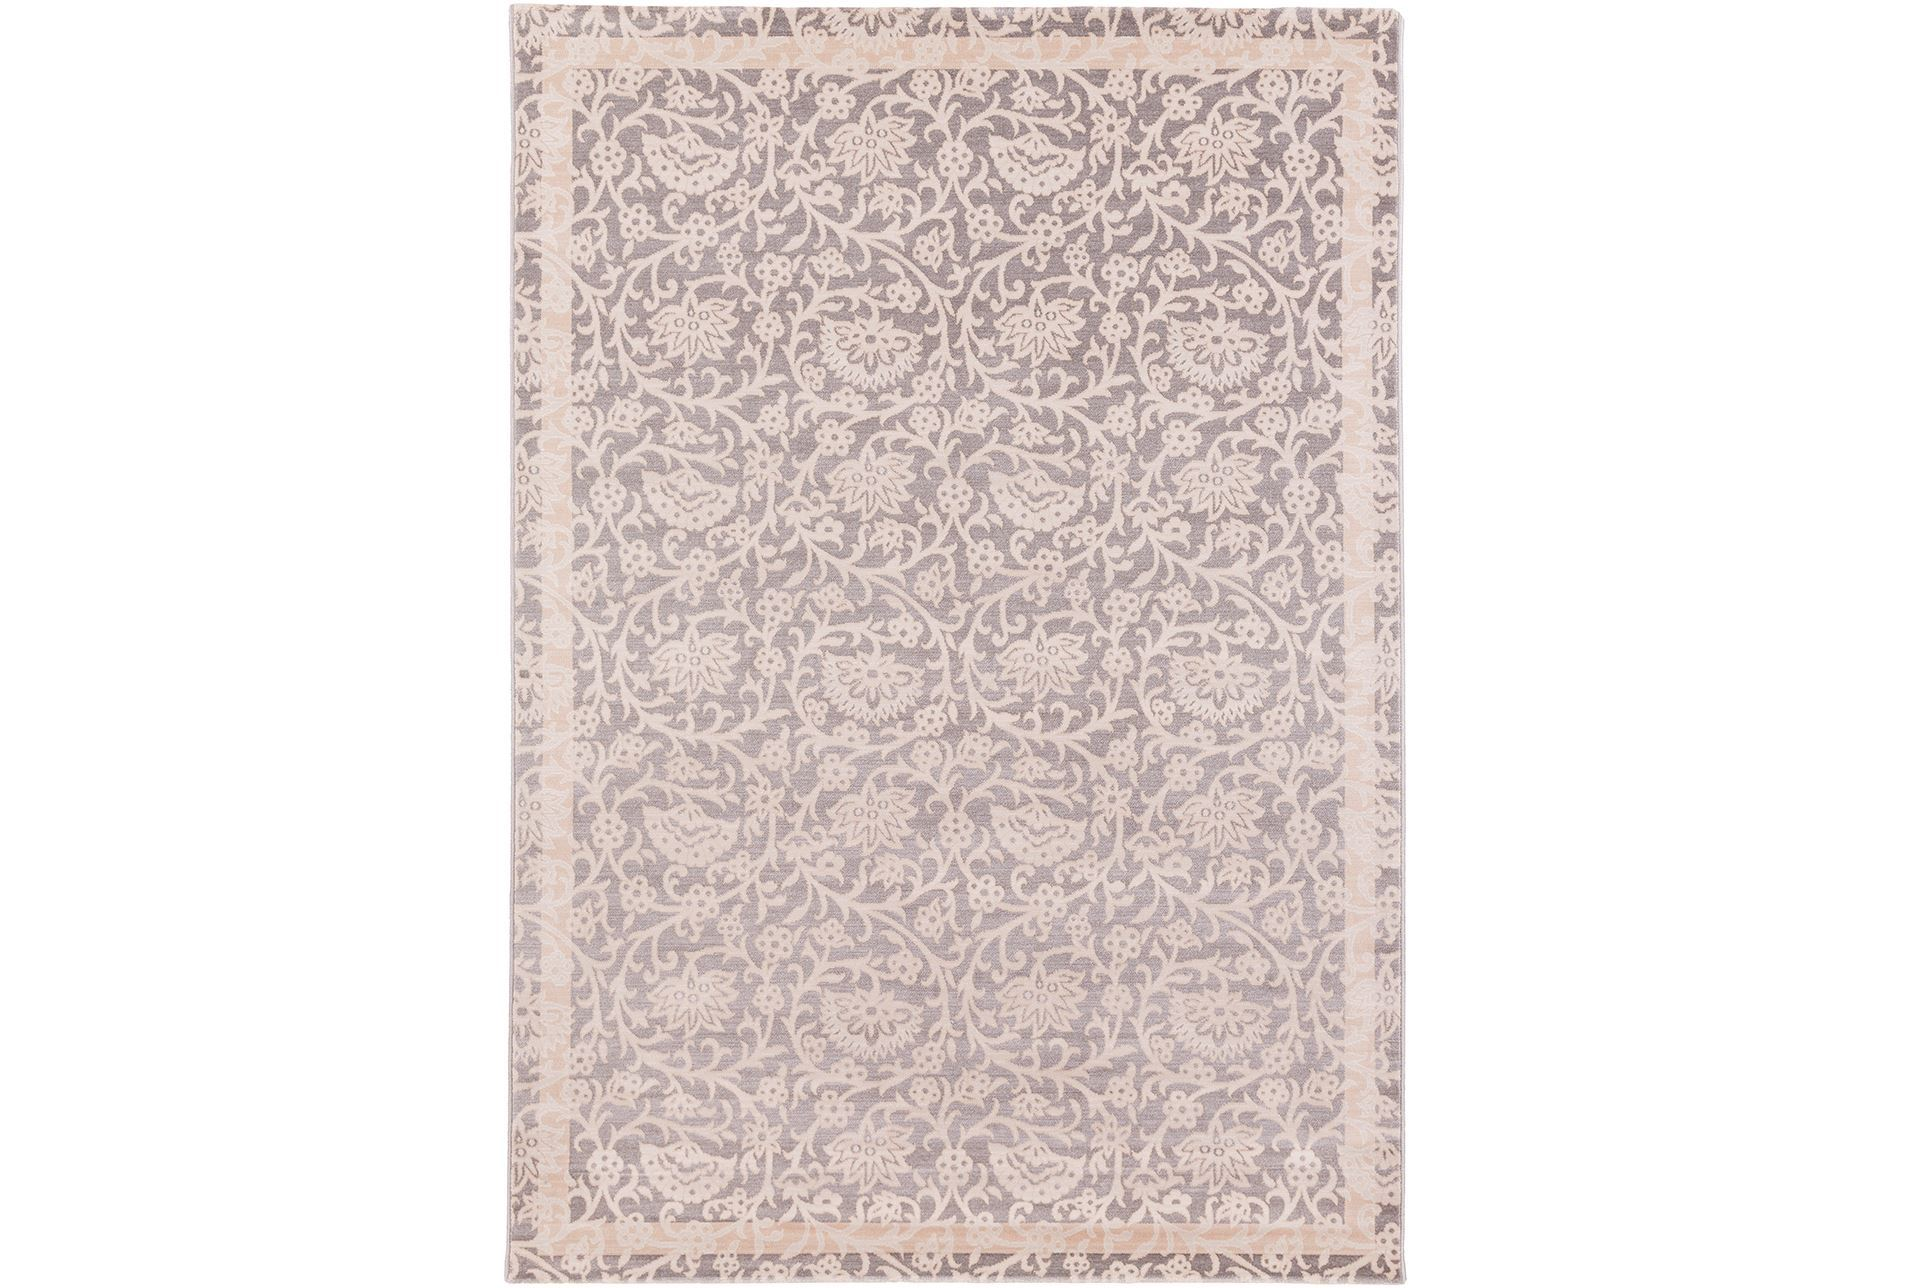 62x91 Promo Rug Ice Blue Floral Living Spaces